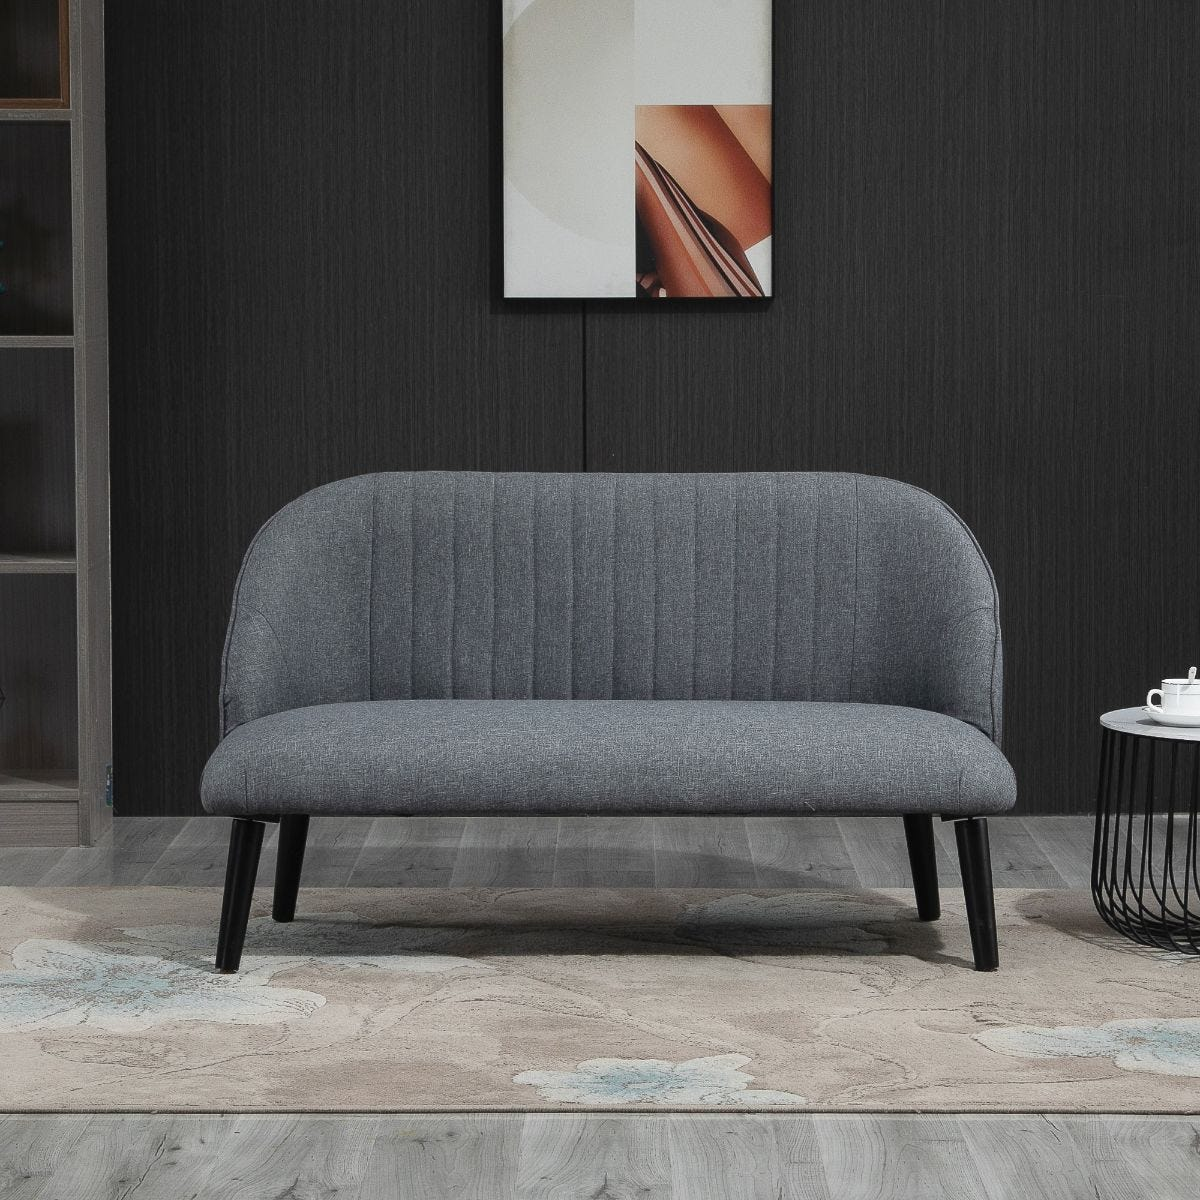 Compact Linen Look Modern 2 Seater Sofa Loveseat With Wood Legs Grey